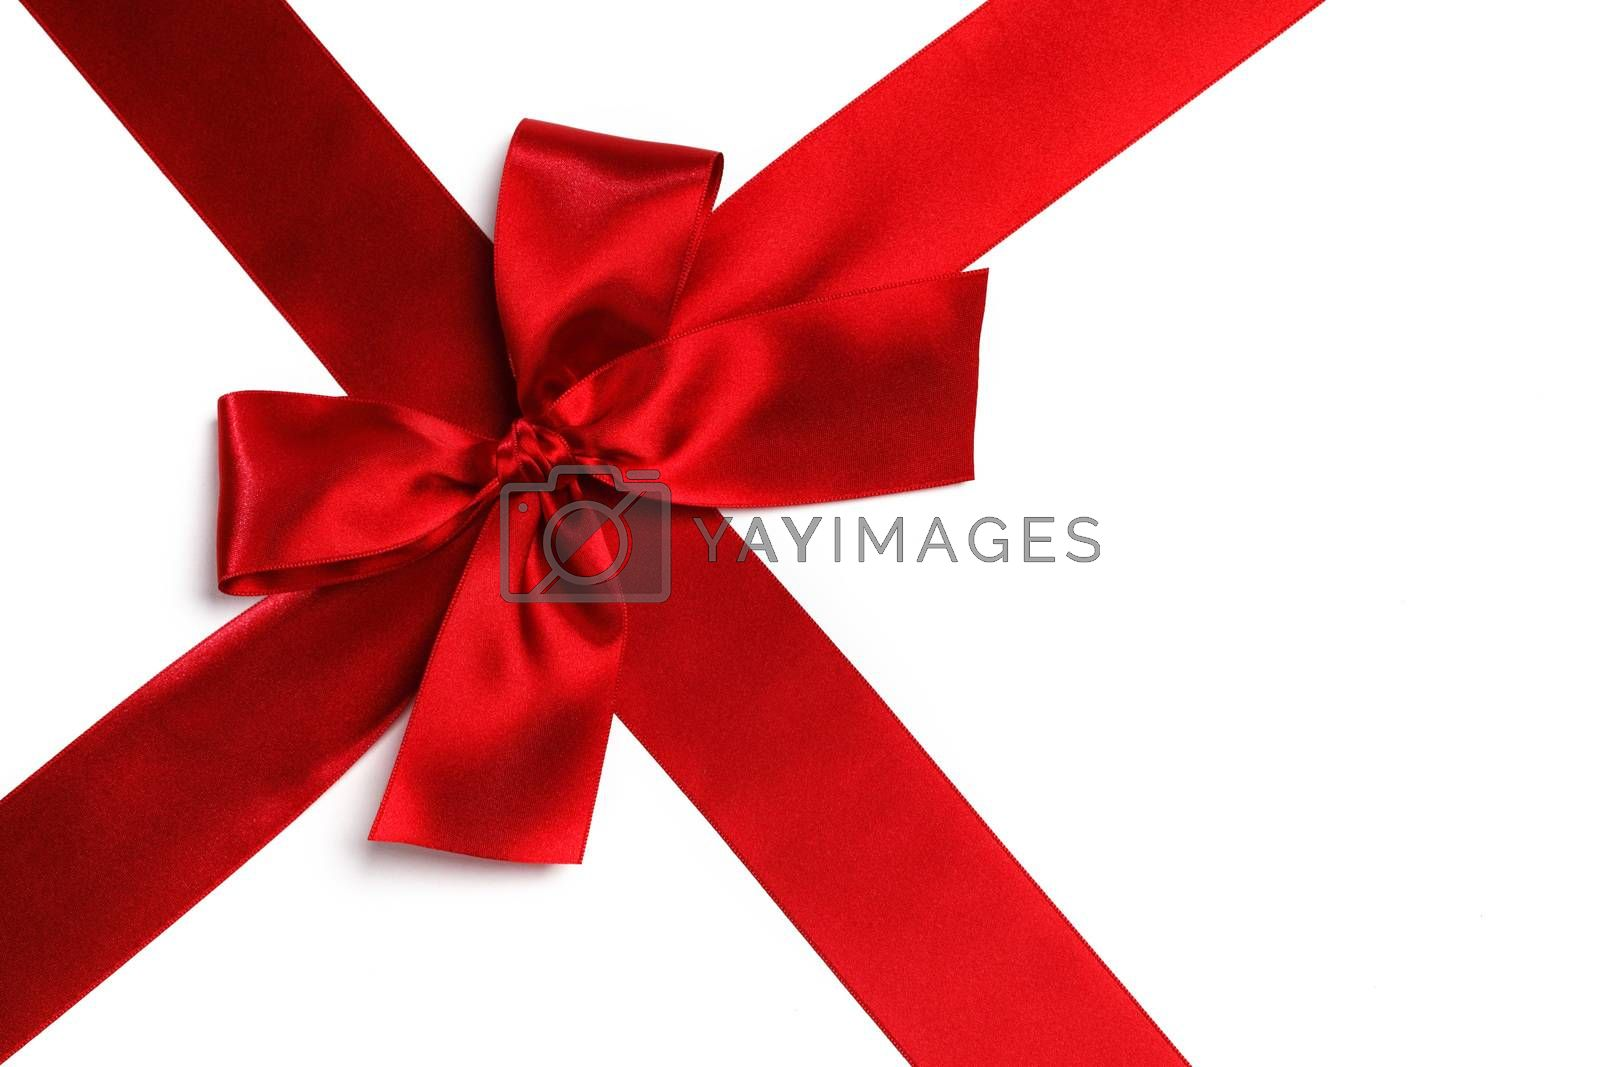 Royalty free image of Decorative bow by Yellowj